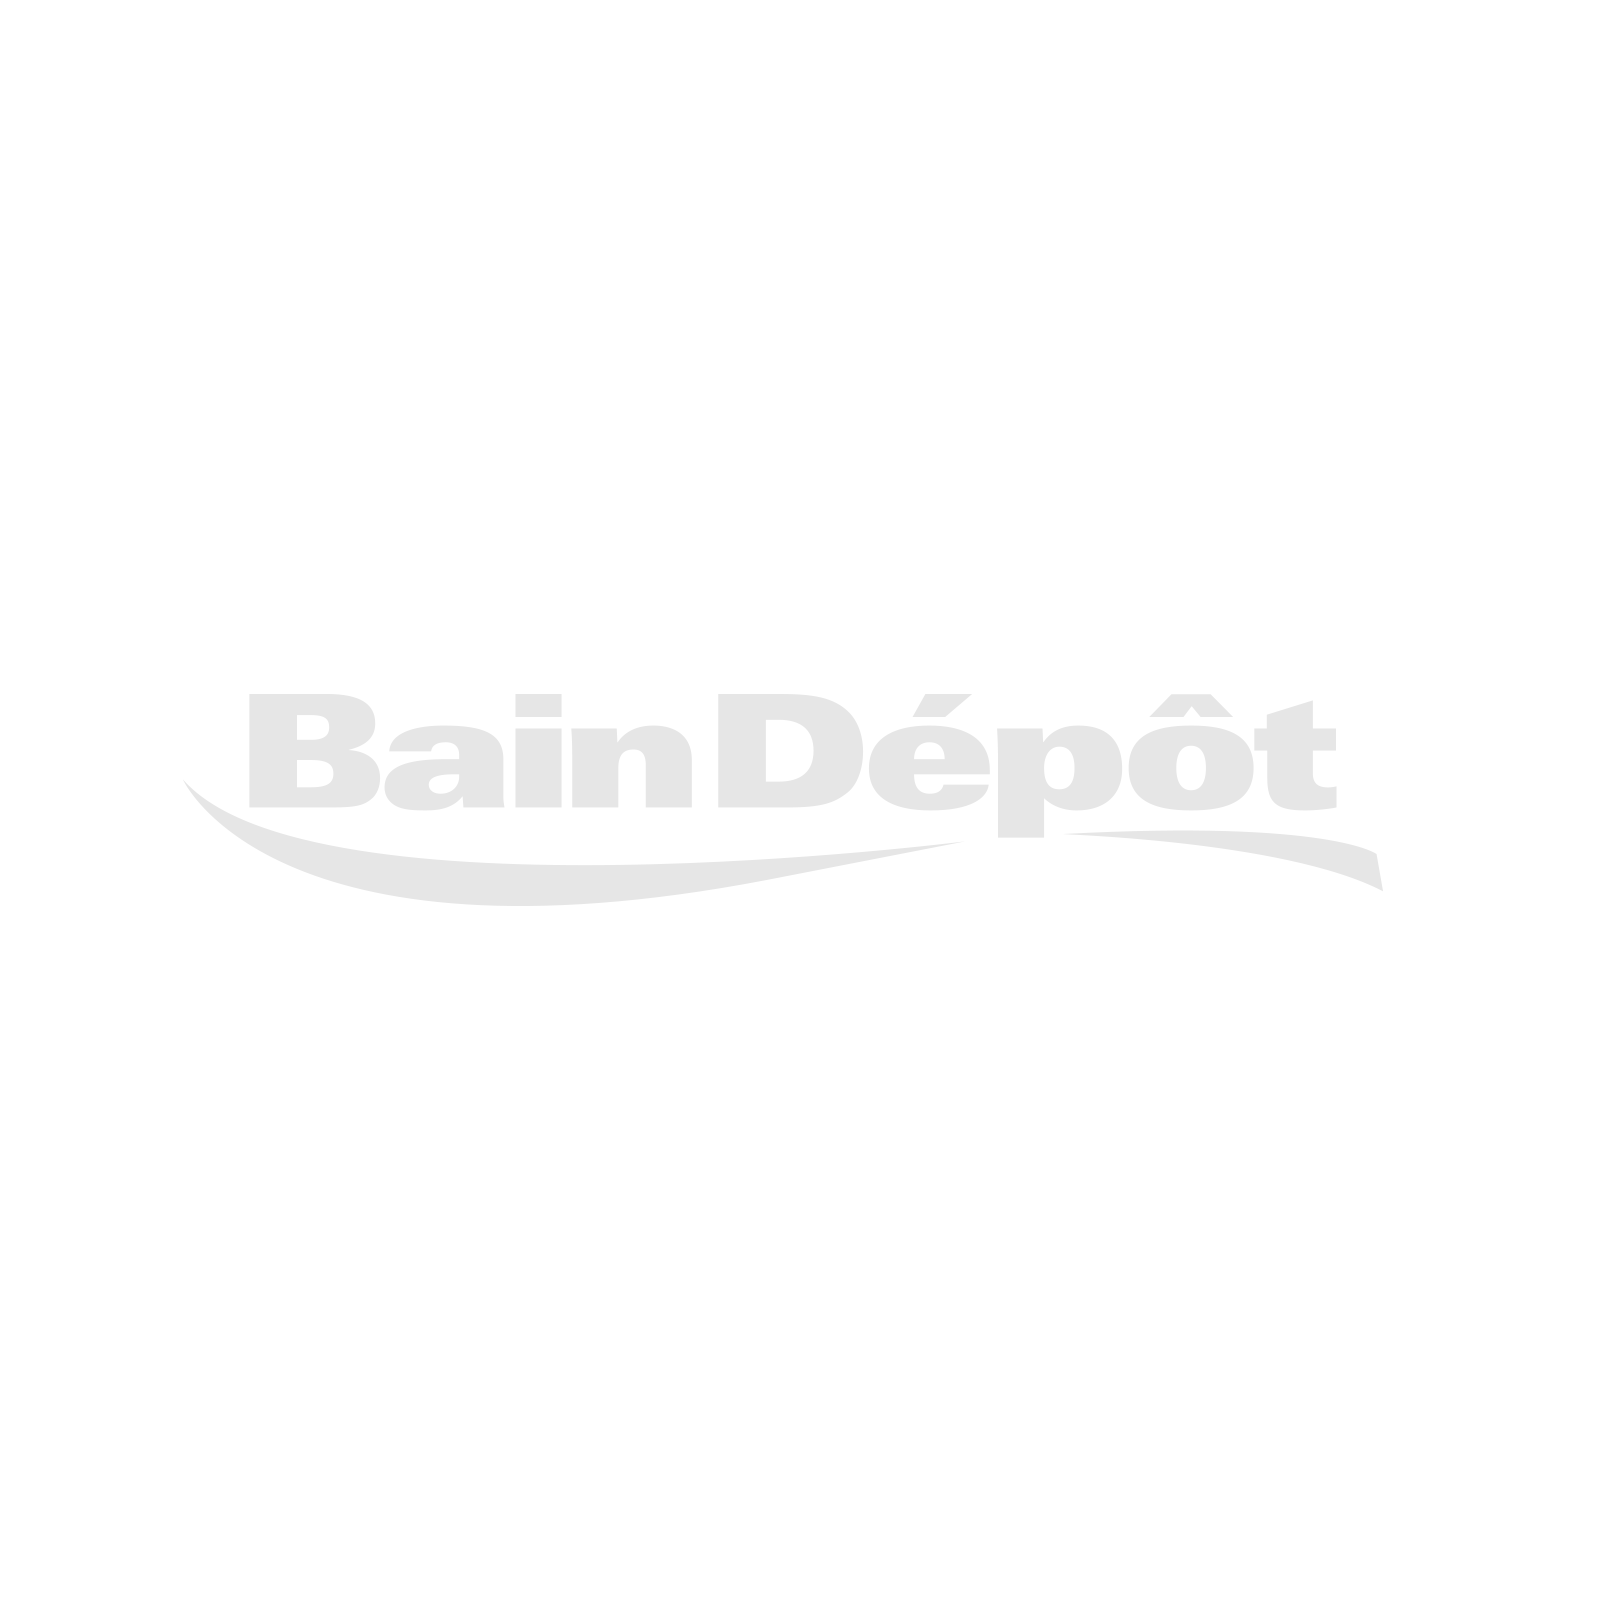 Matte black 3-piece roman bathtub faucet